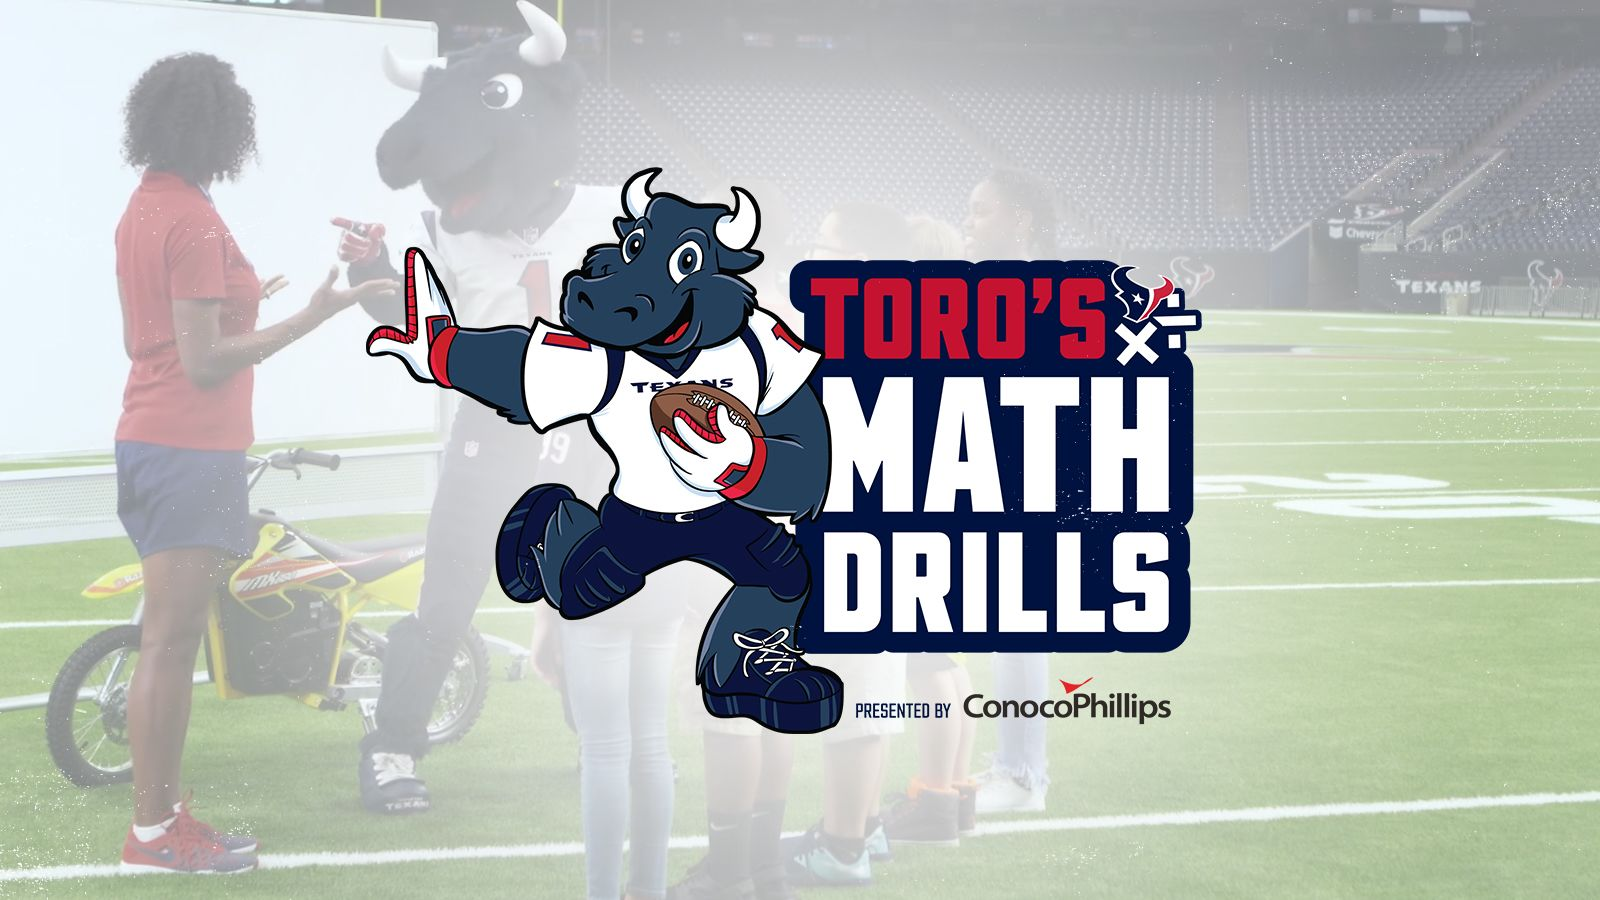 TORO's Math Drills. presented by Conoco Philllips